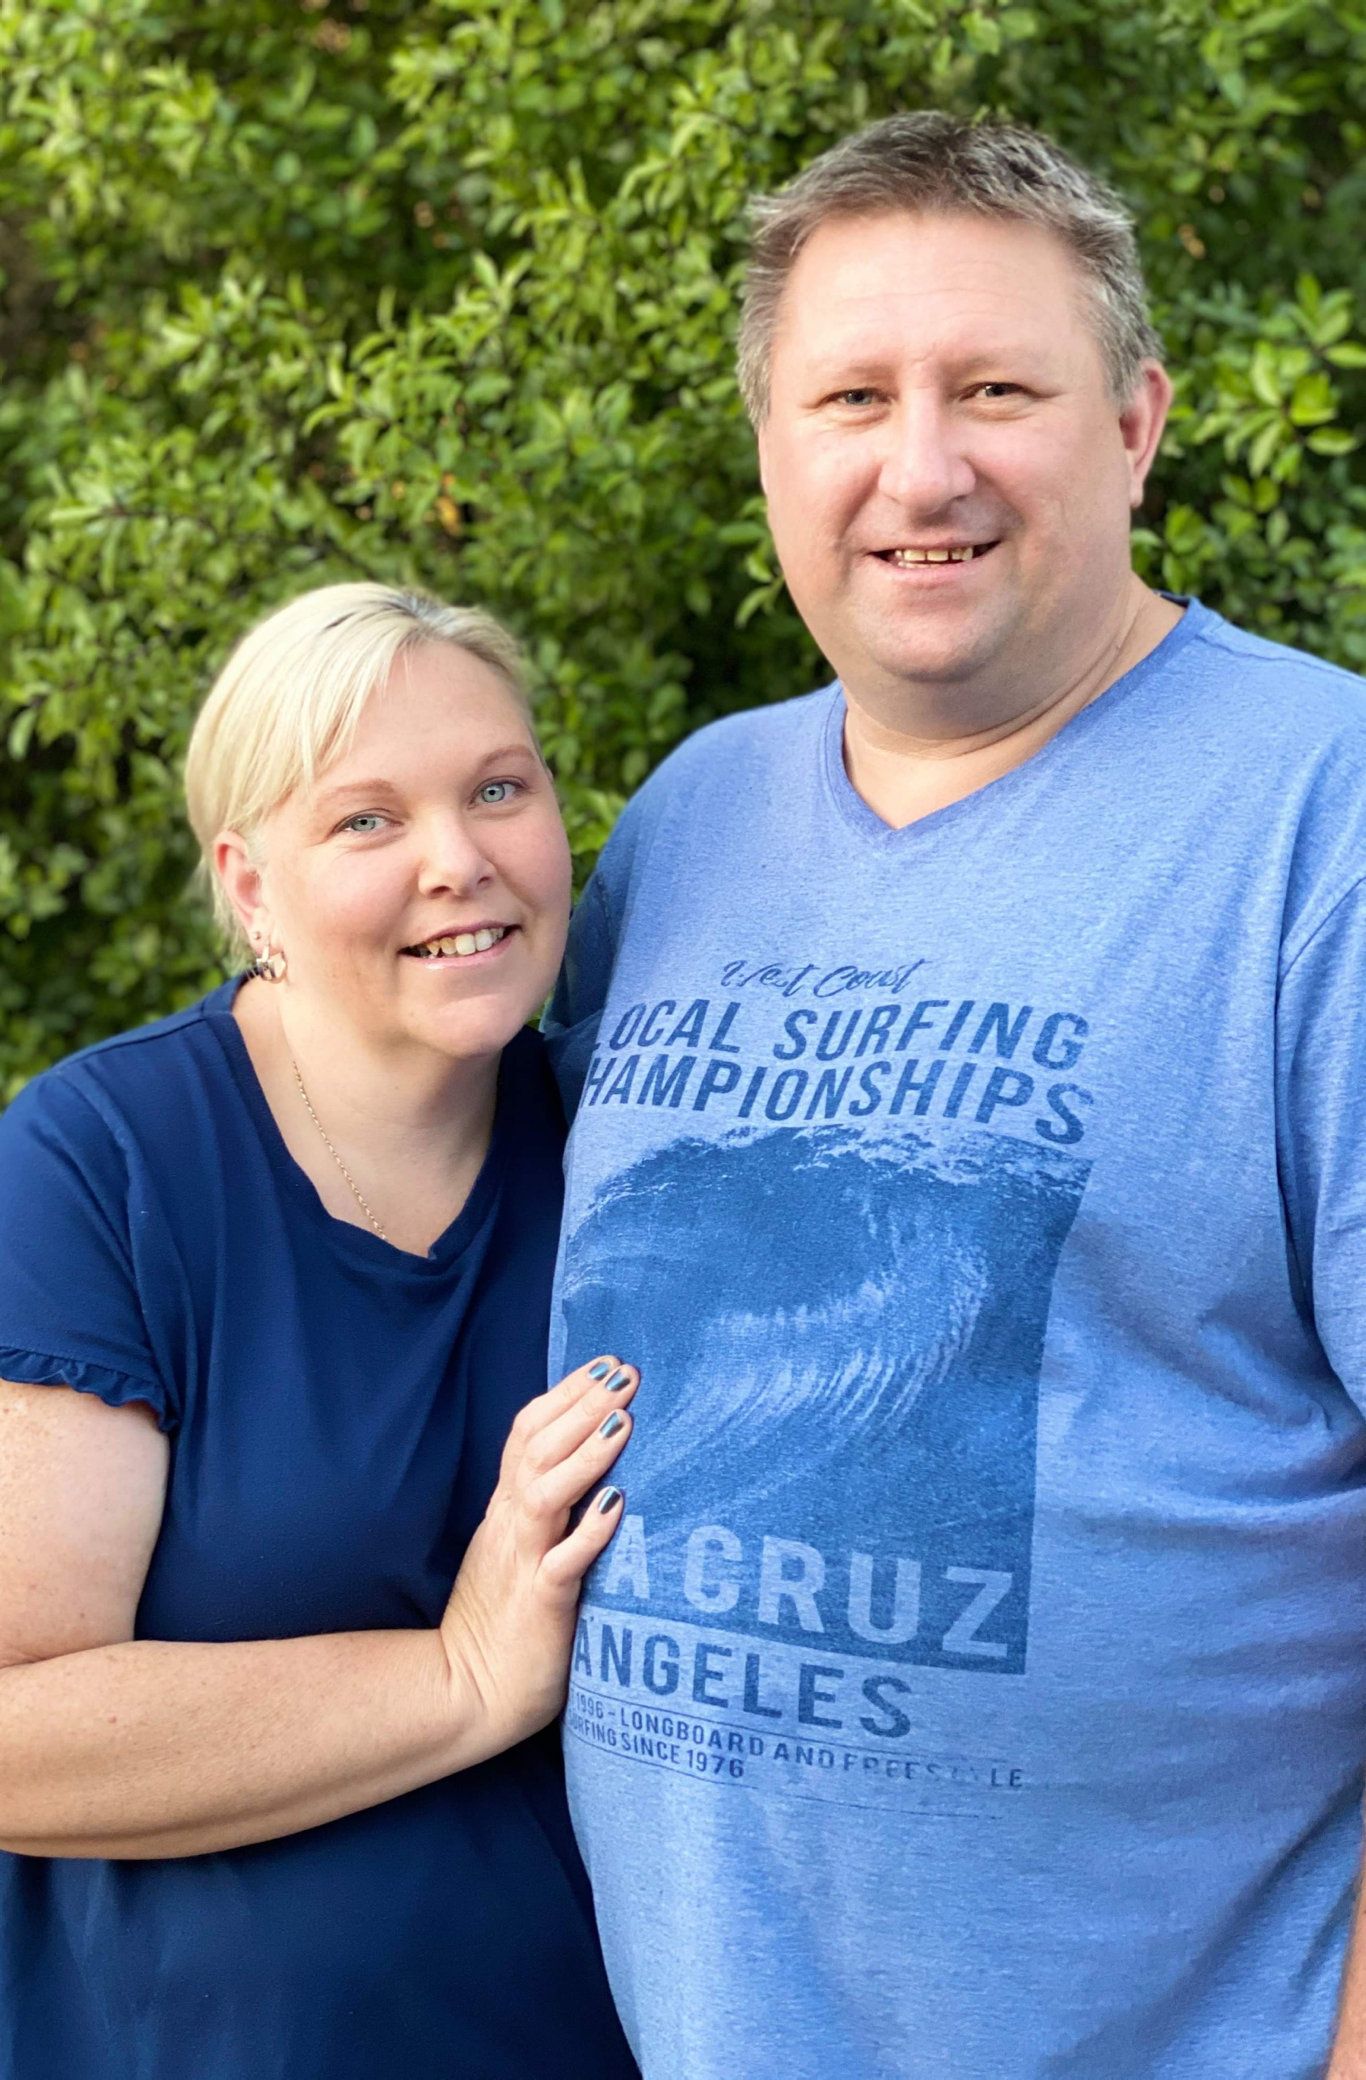 Chris and Nicole Jorgensen are sharing their heartbreaking story in the hope it will help others.